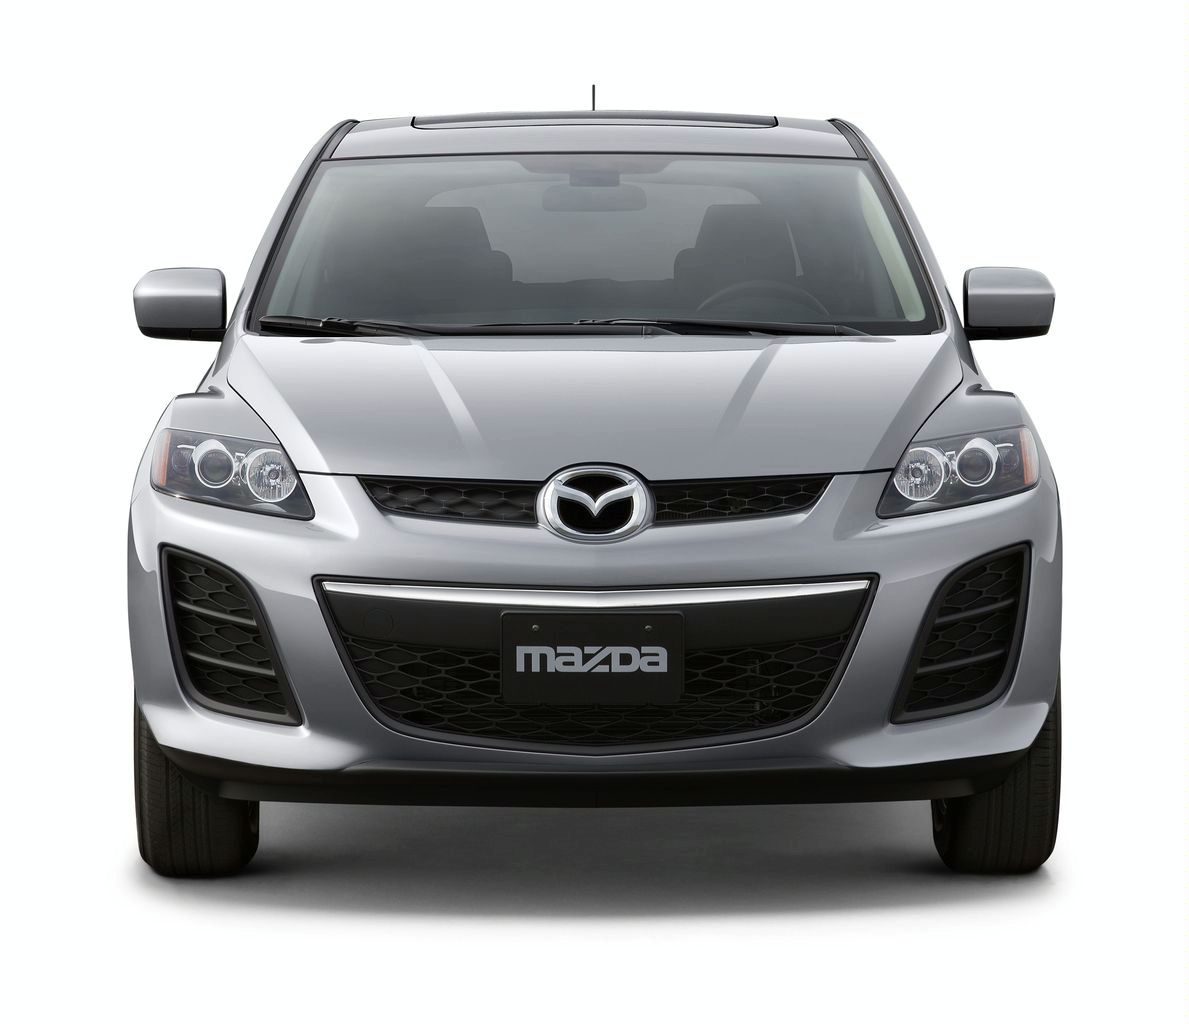 2010 mazda cx 7 world premiere in new york autoevolution. Black Bedroom Furniture Sets. Home Design Ideas